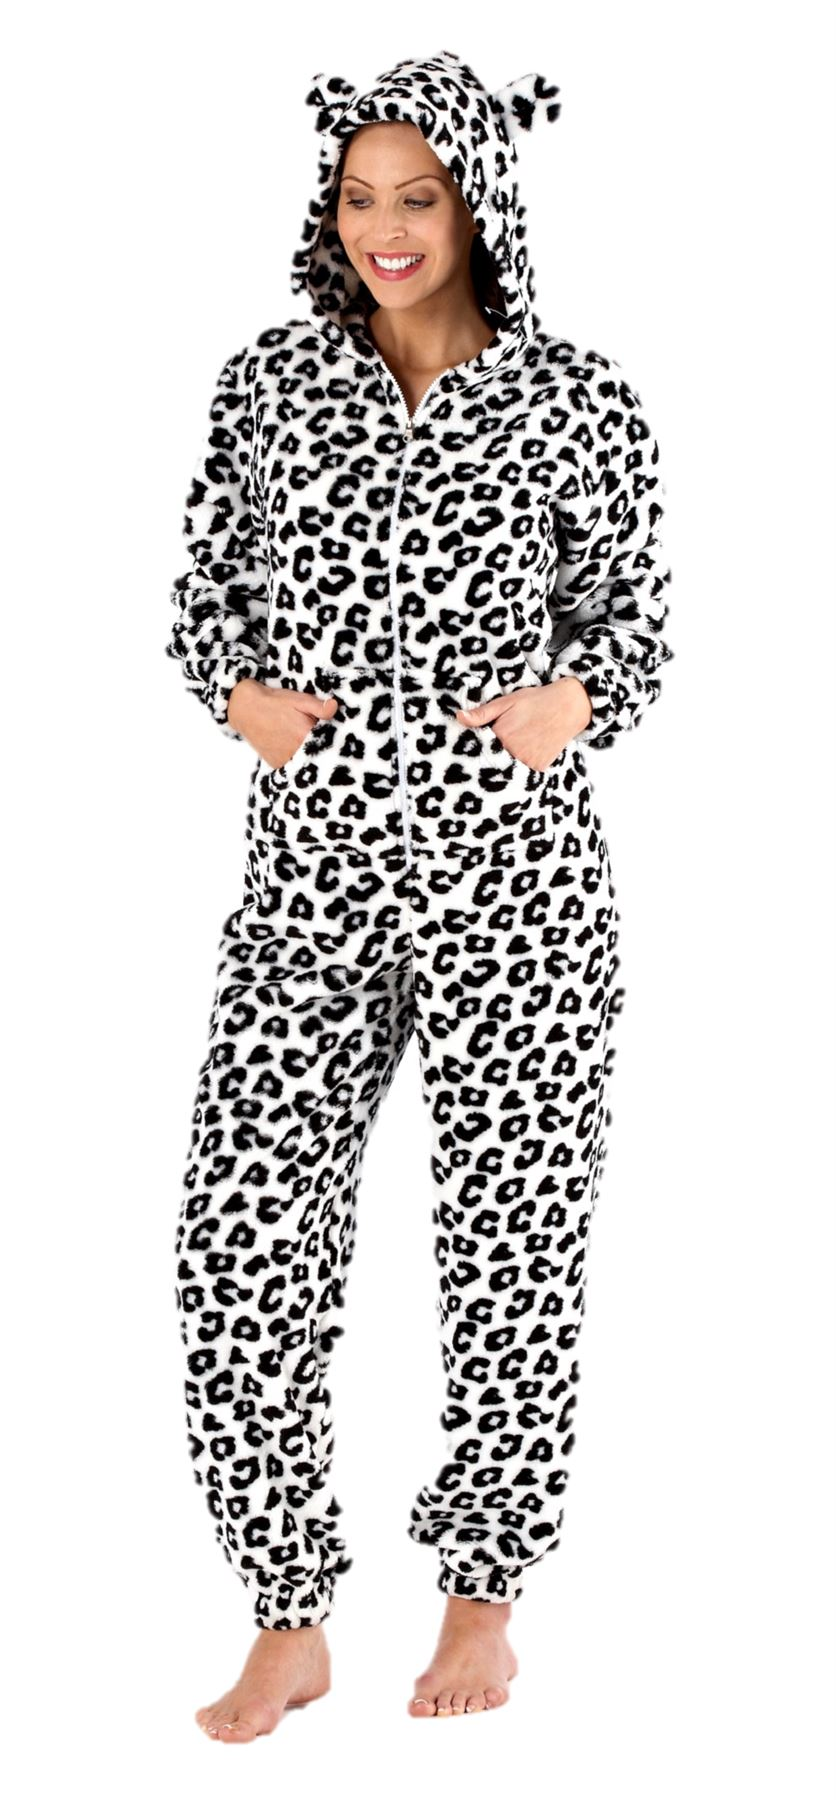 Find great deals on Girls Kids One-Piece Pajamas at Kohl's today! Sponsored Links Outside companies pay to advertise via these links when specific phrases and words are searched.